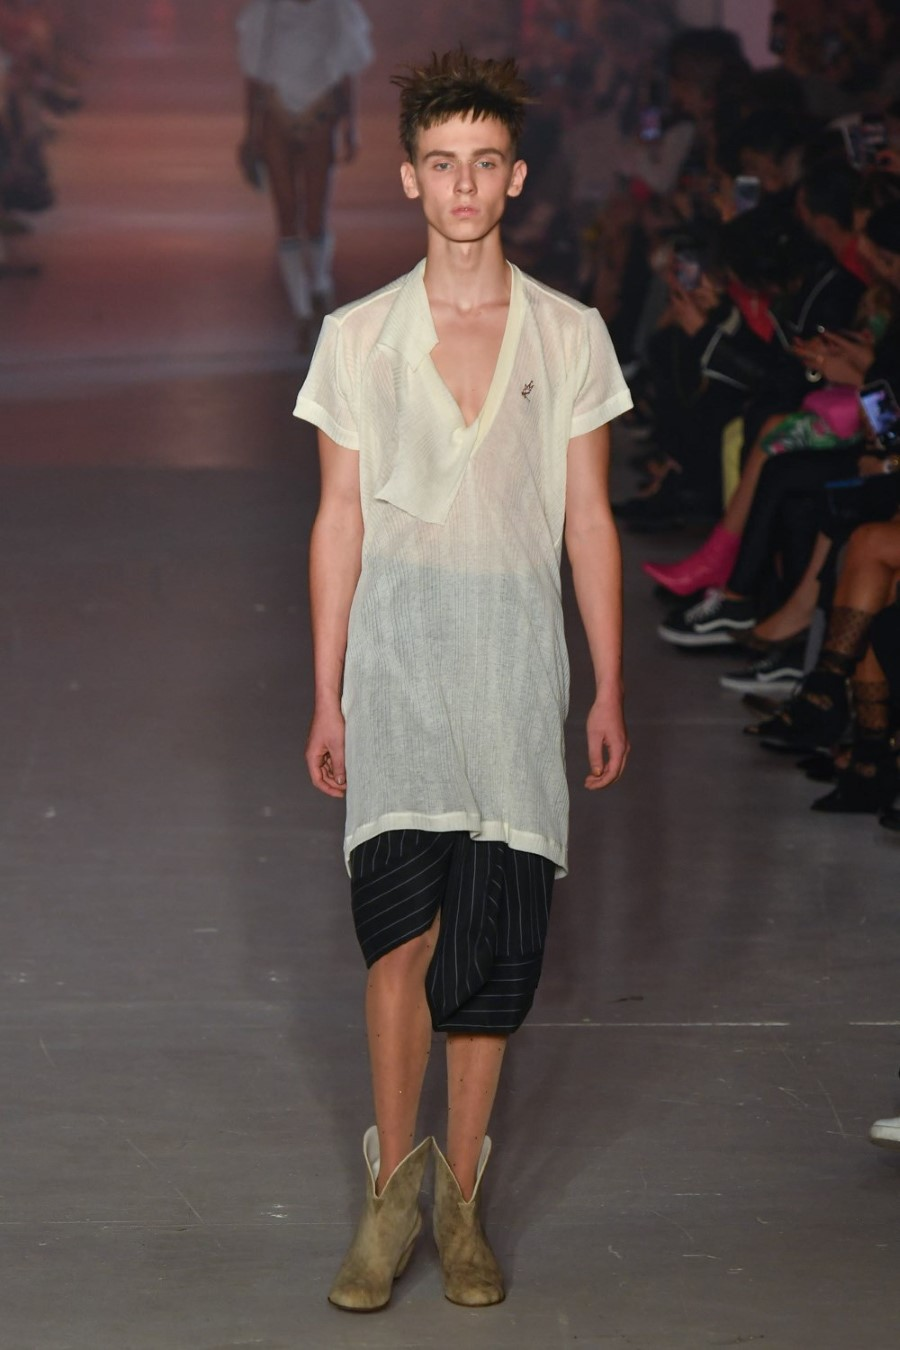 Andreas Kronthaler for Vivienne Westwood - Printemps/Été 2020 - Paris Fashion Week